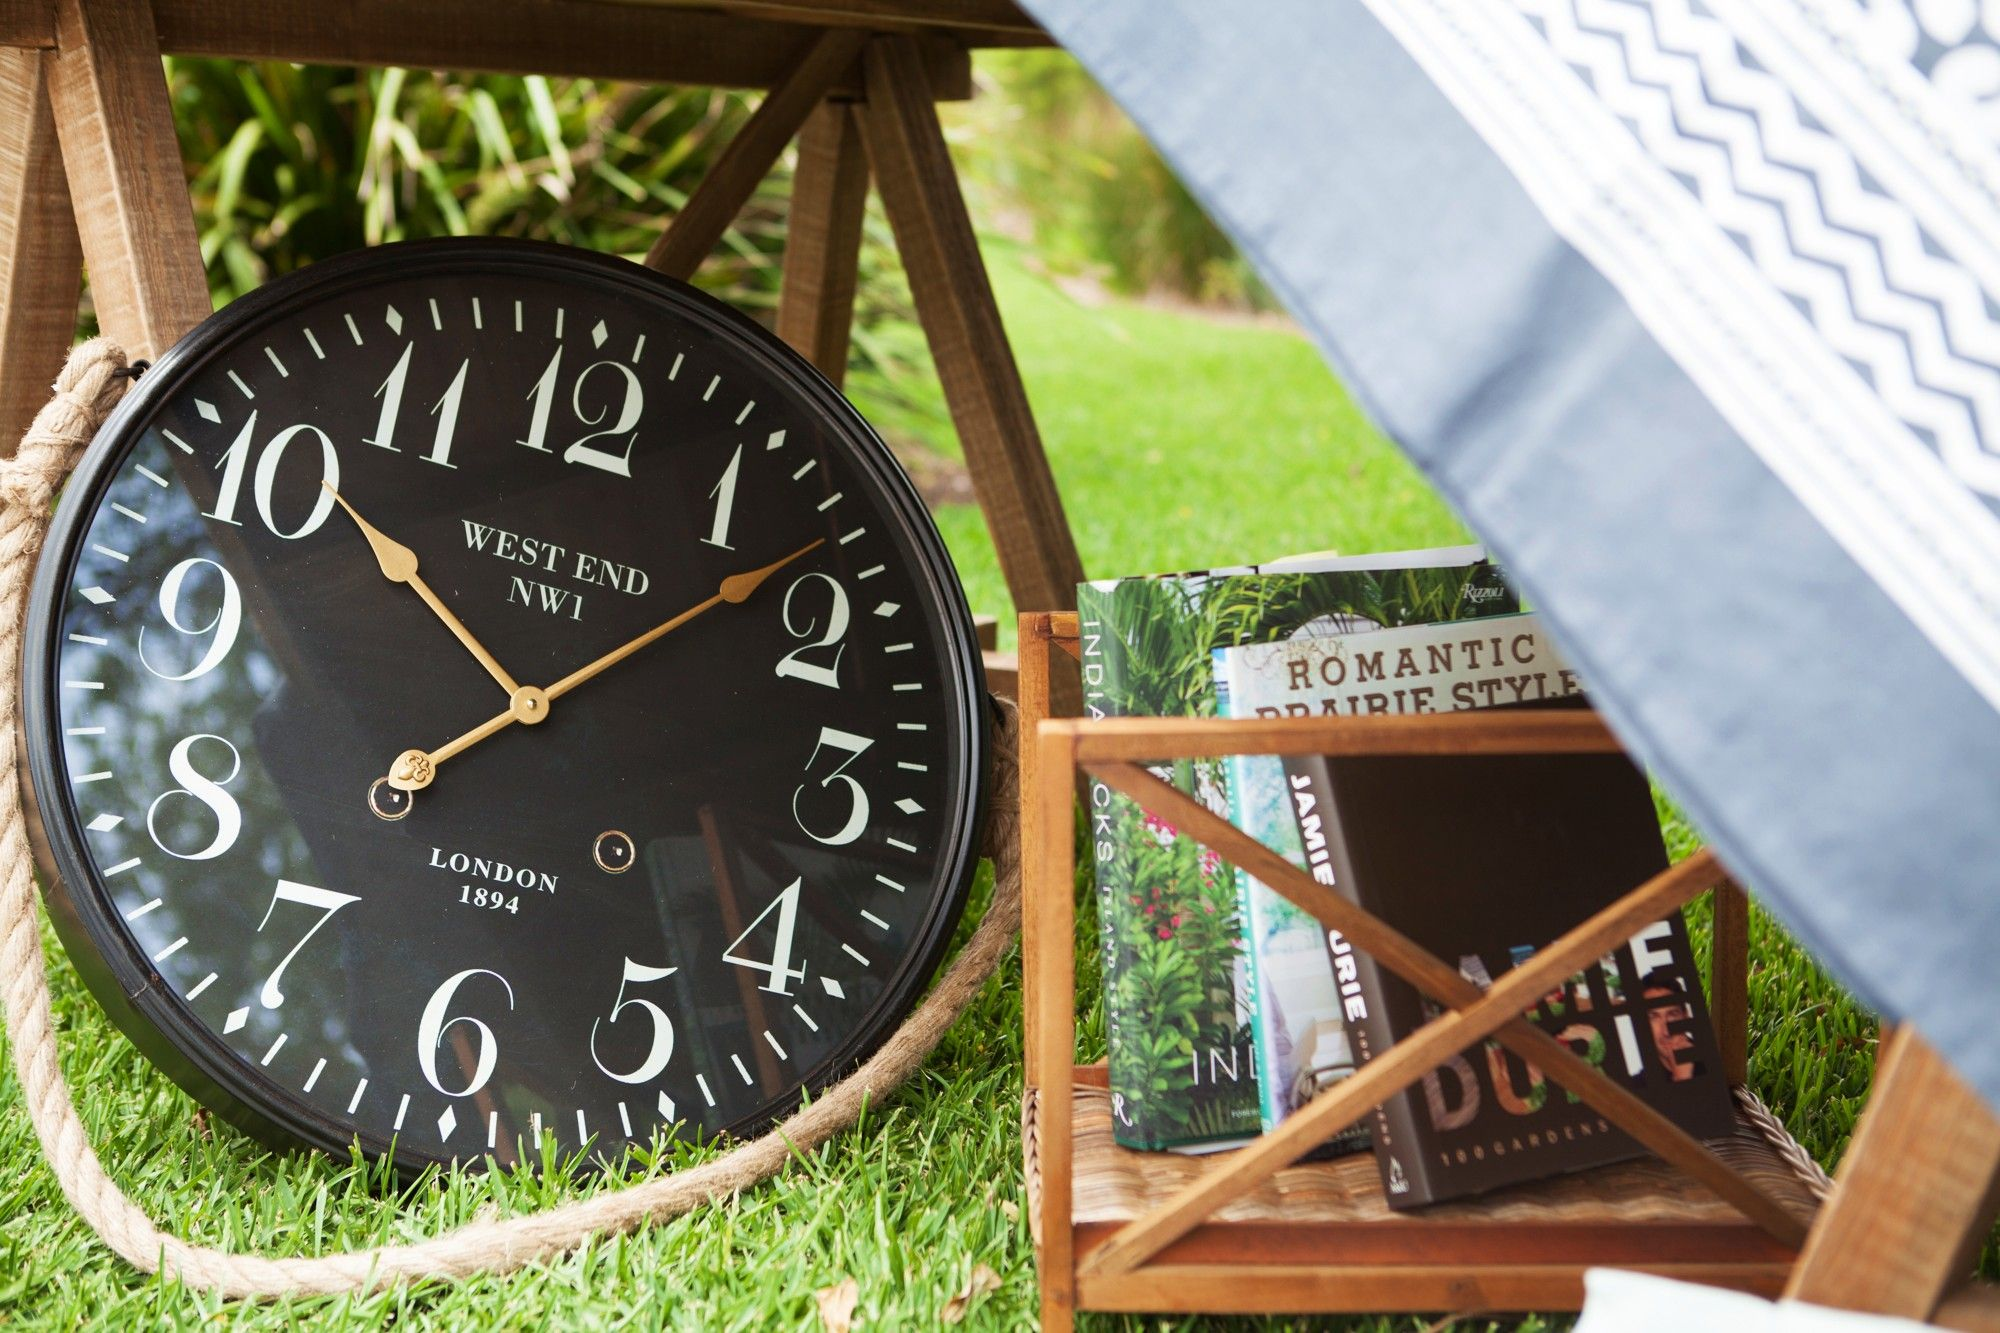 Classic clocks always add a touch of glamour to both rustic and contemporary settings